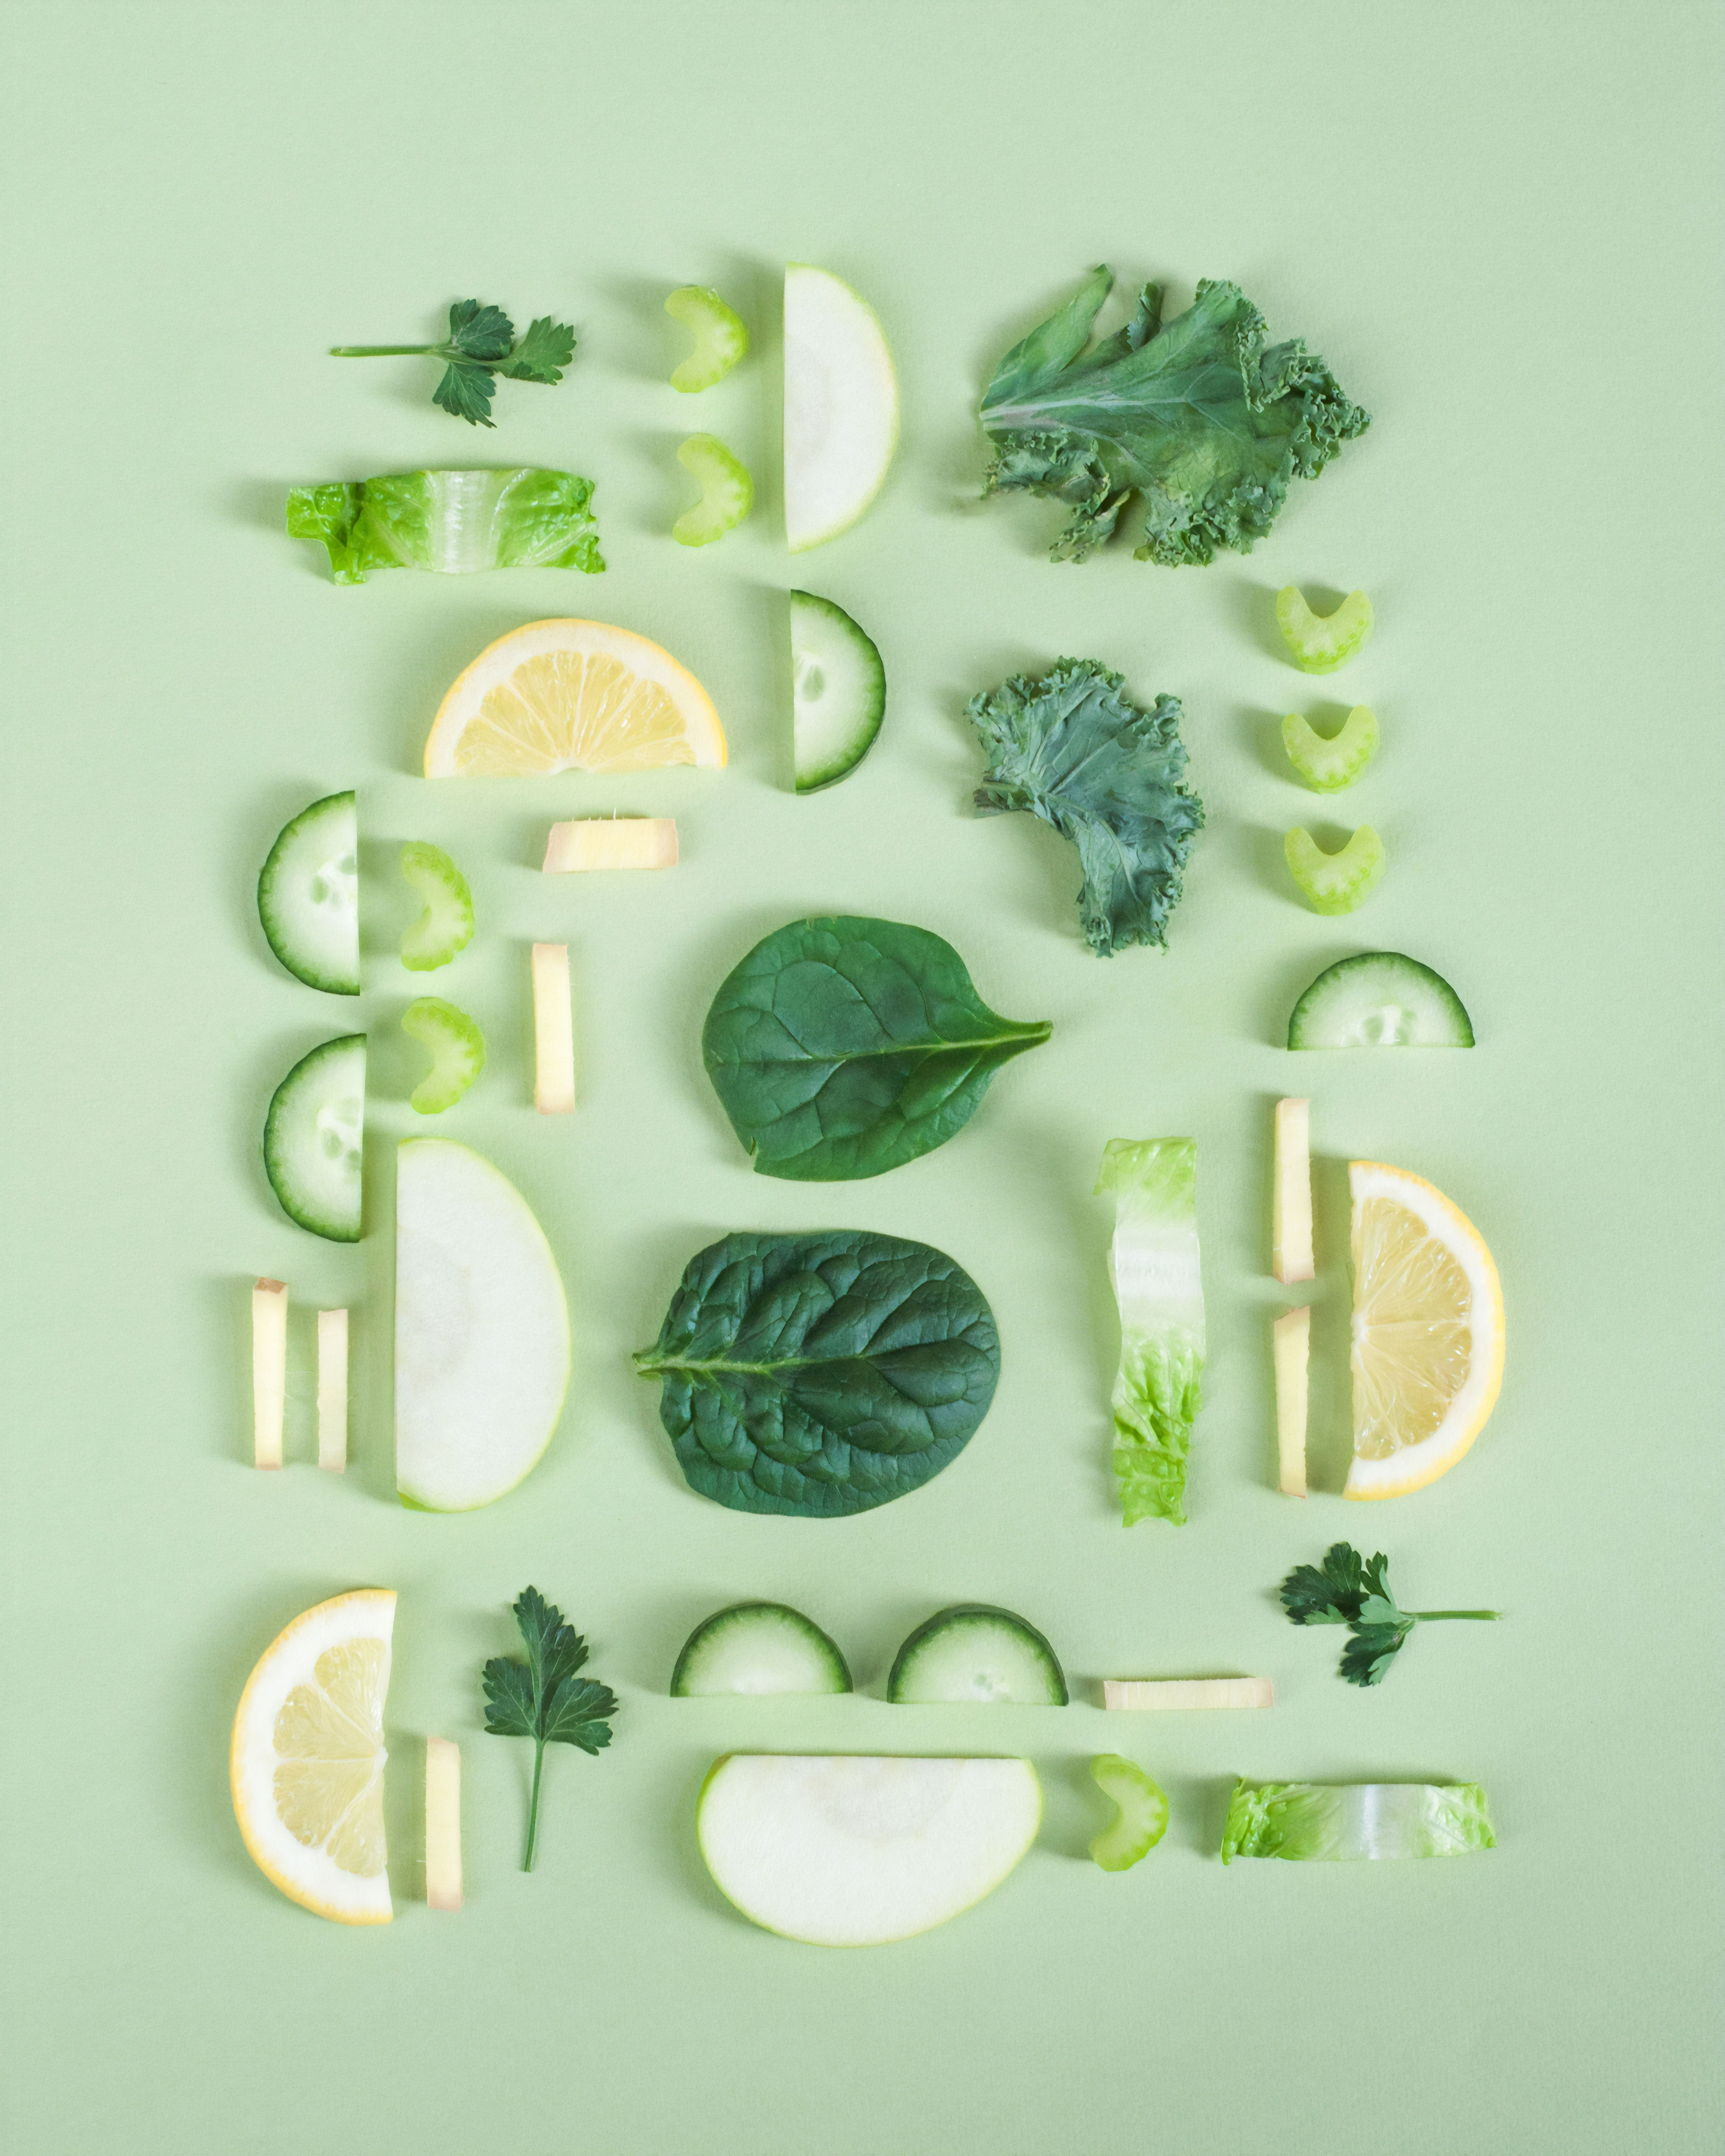 healthy green fruits and veggies